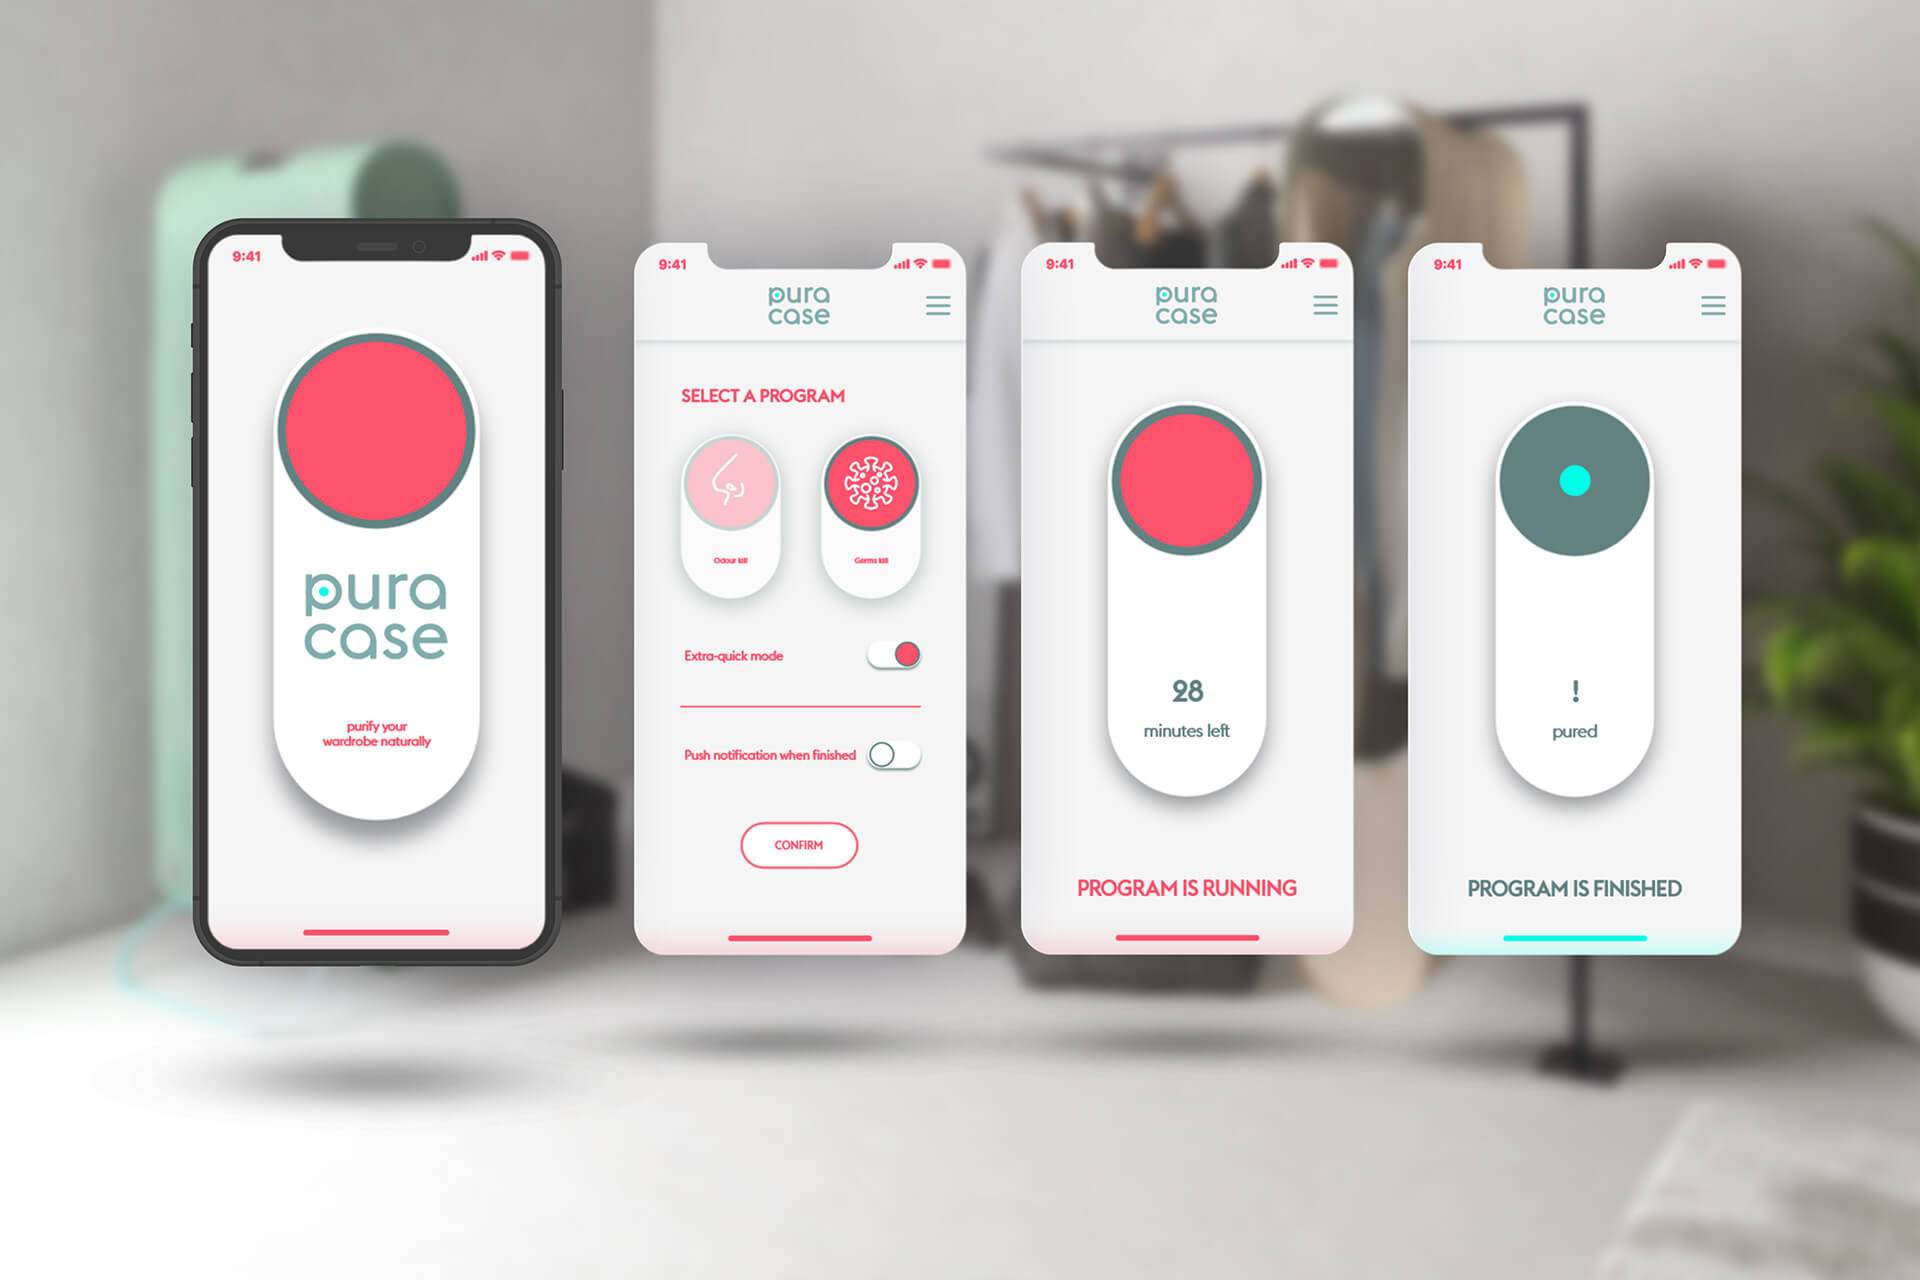 The sanitising process can be remotely started and controlled via the Pura-Case mobile app | Pura-Case by Carlo Ratti Associati | STIRworld